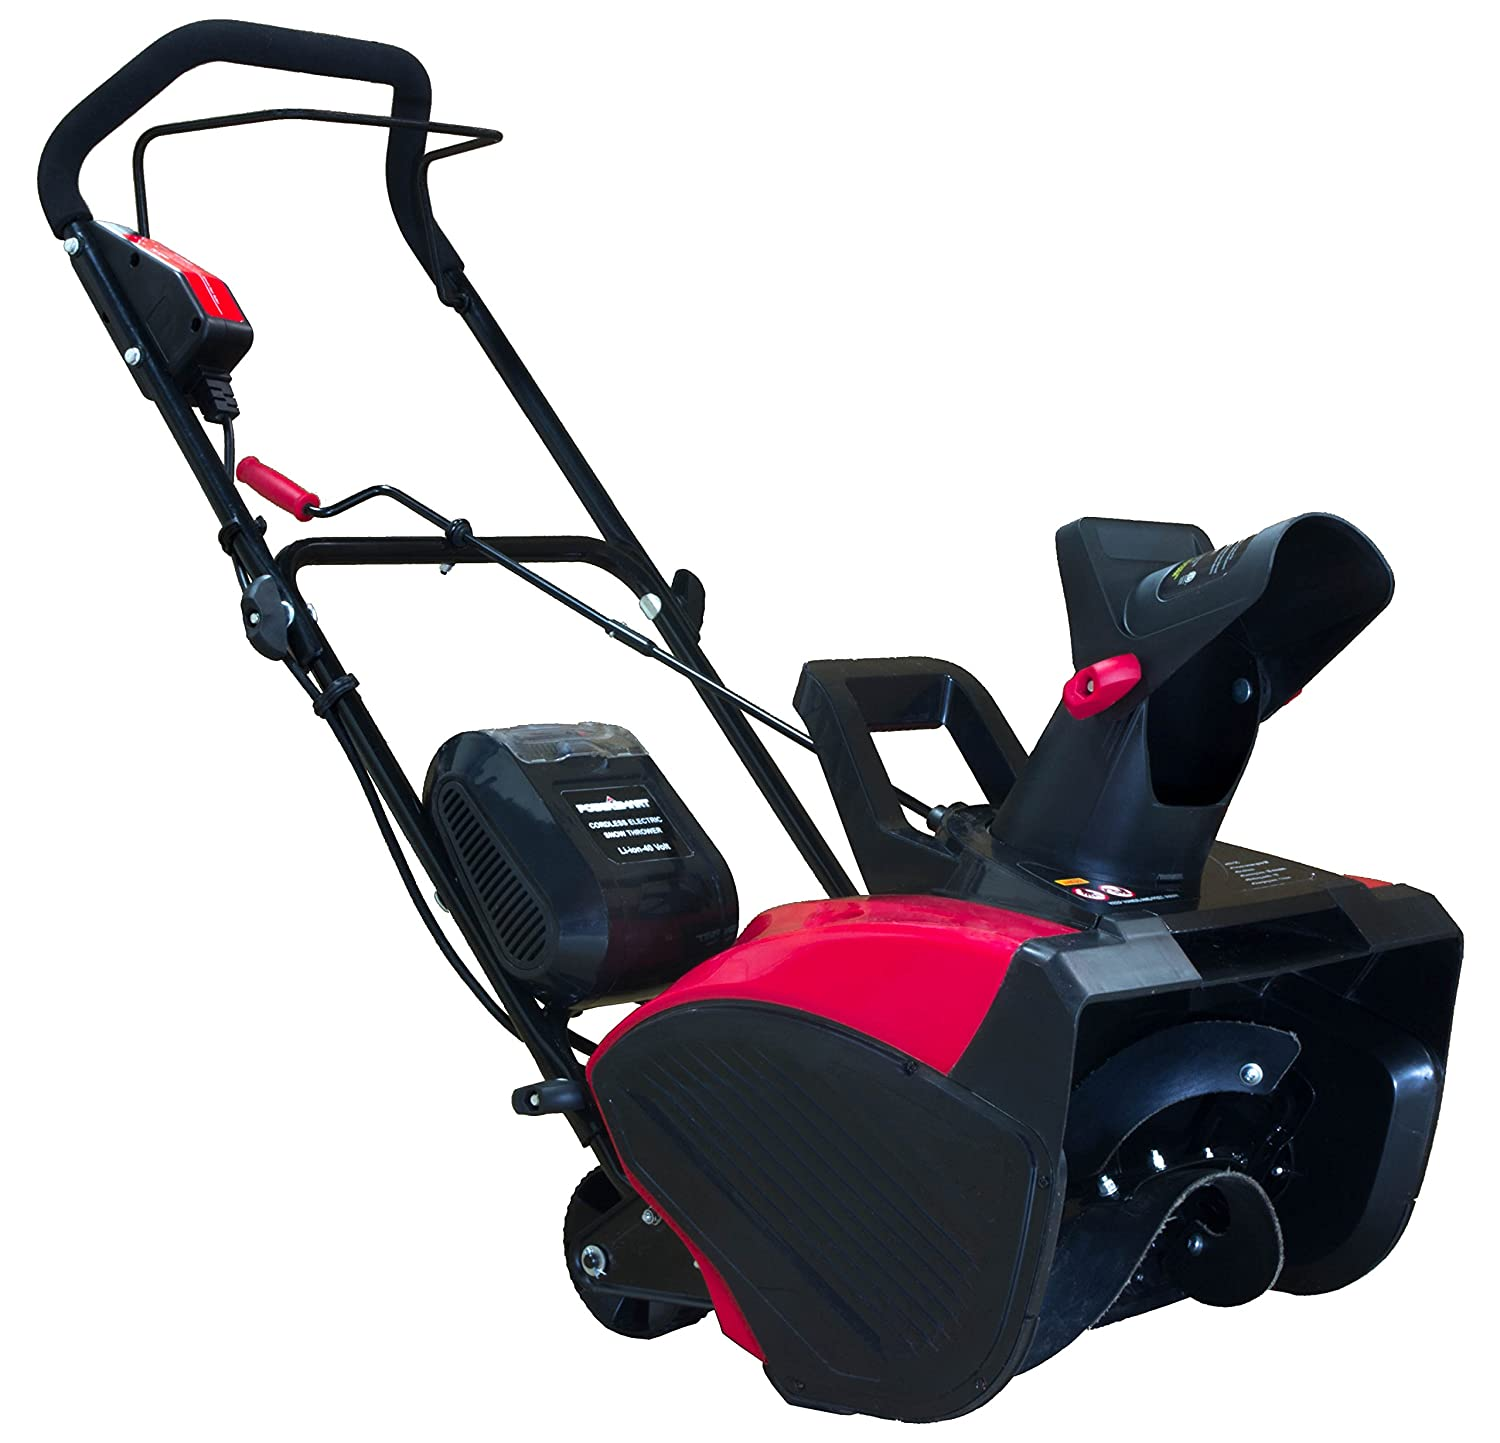 powersmart snow blower review